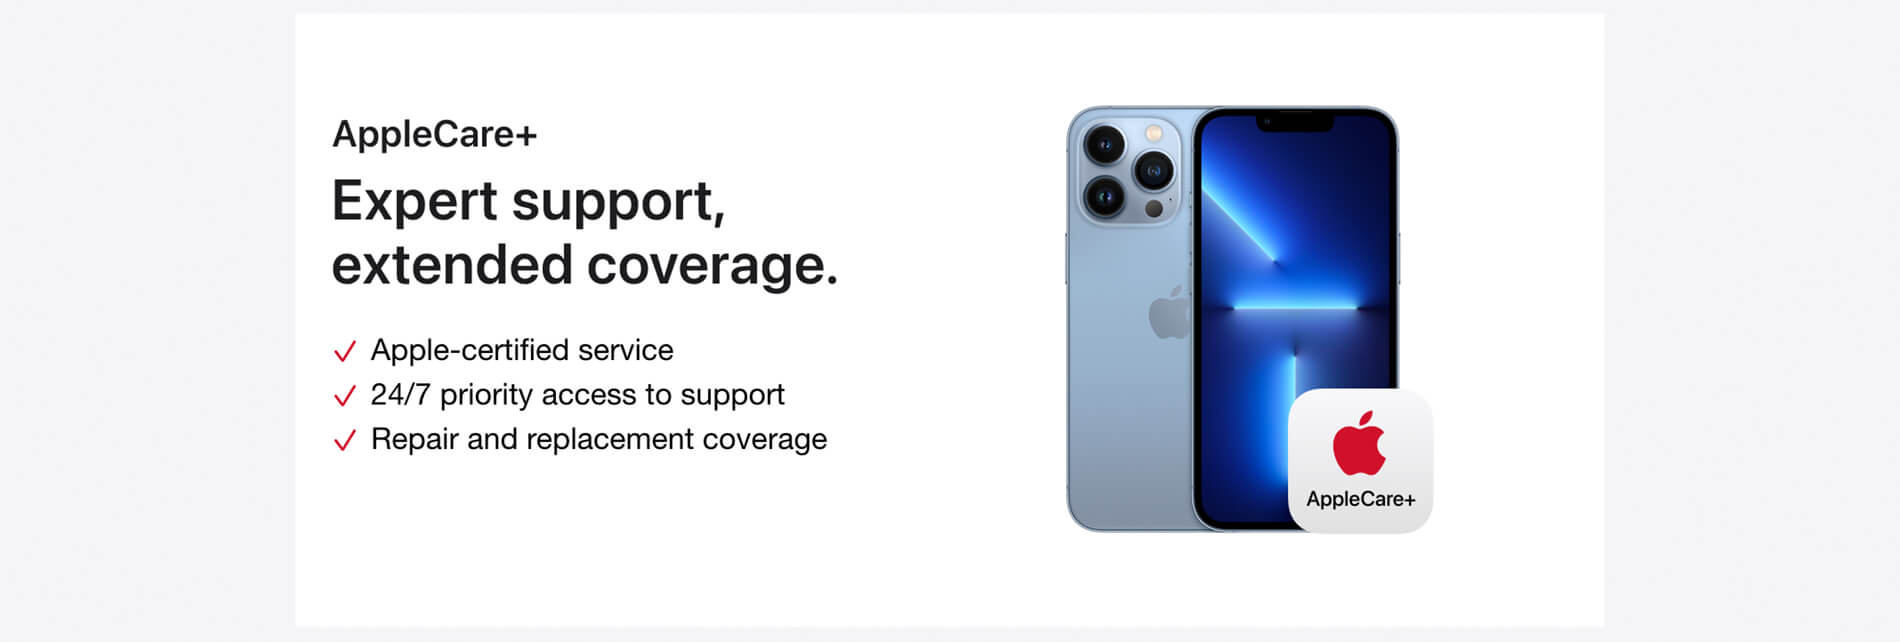 iPhone 13 Pro. Oh. So. Pro.